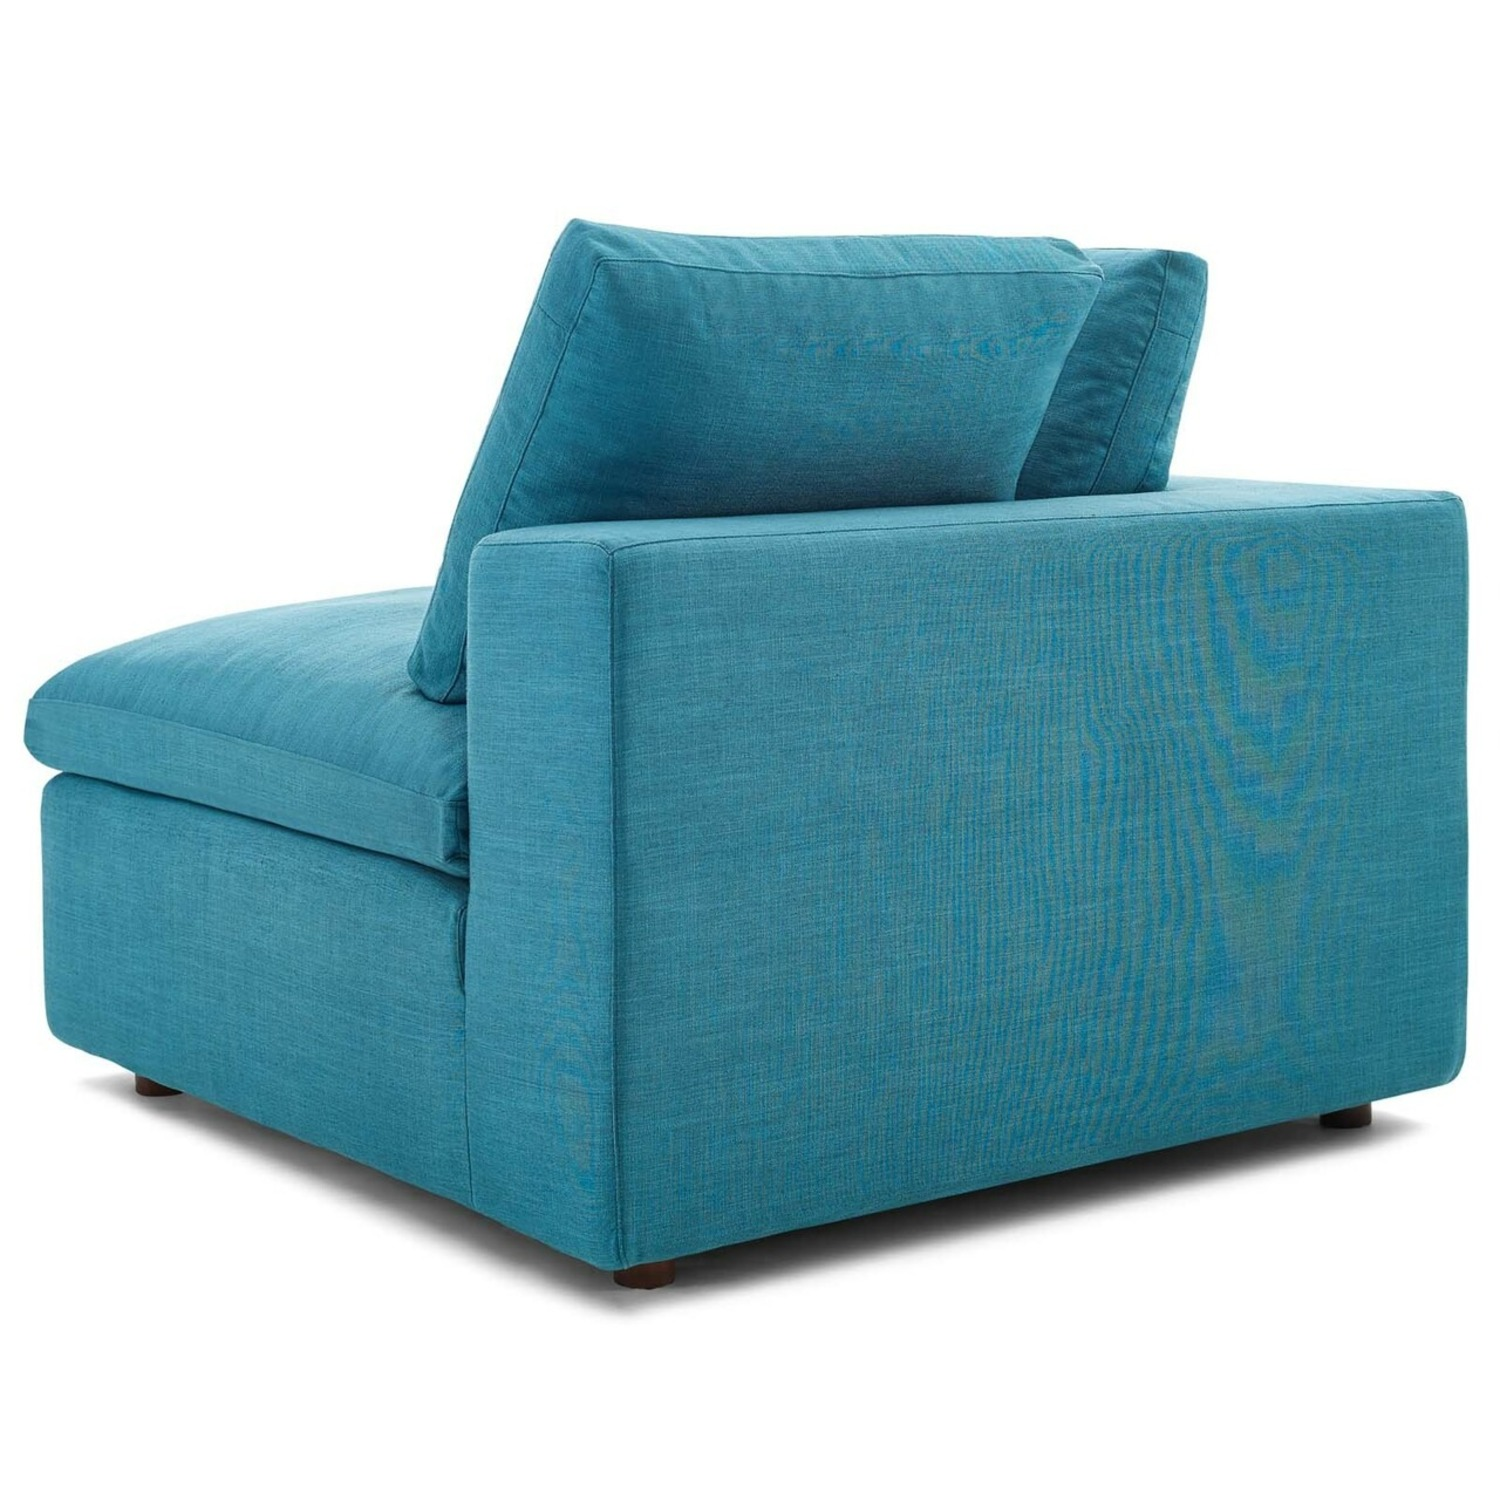 2-Piece Sectional Sofa In Teal Linen Fabric - image-3